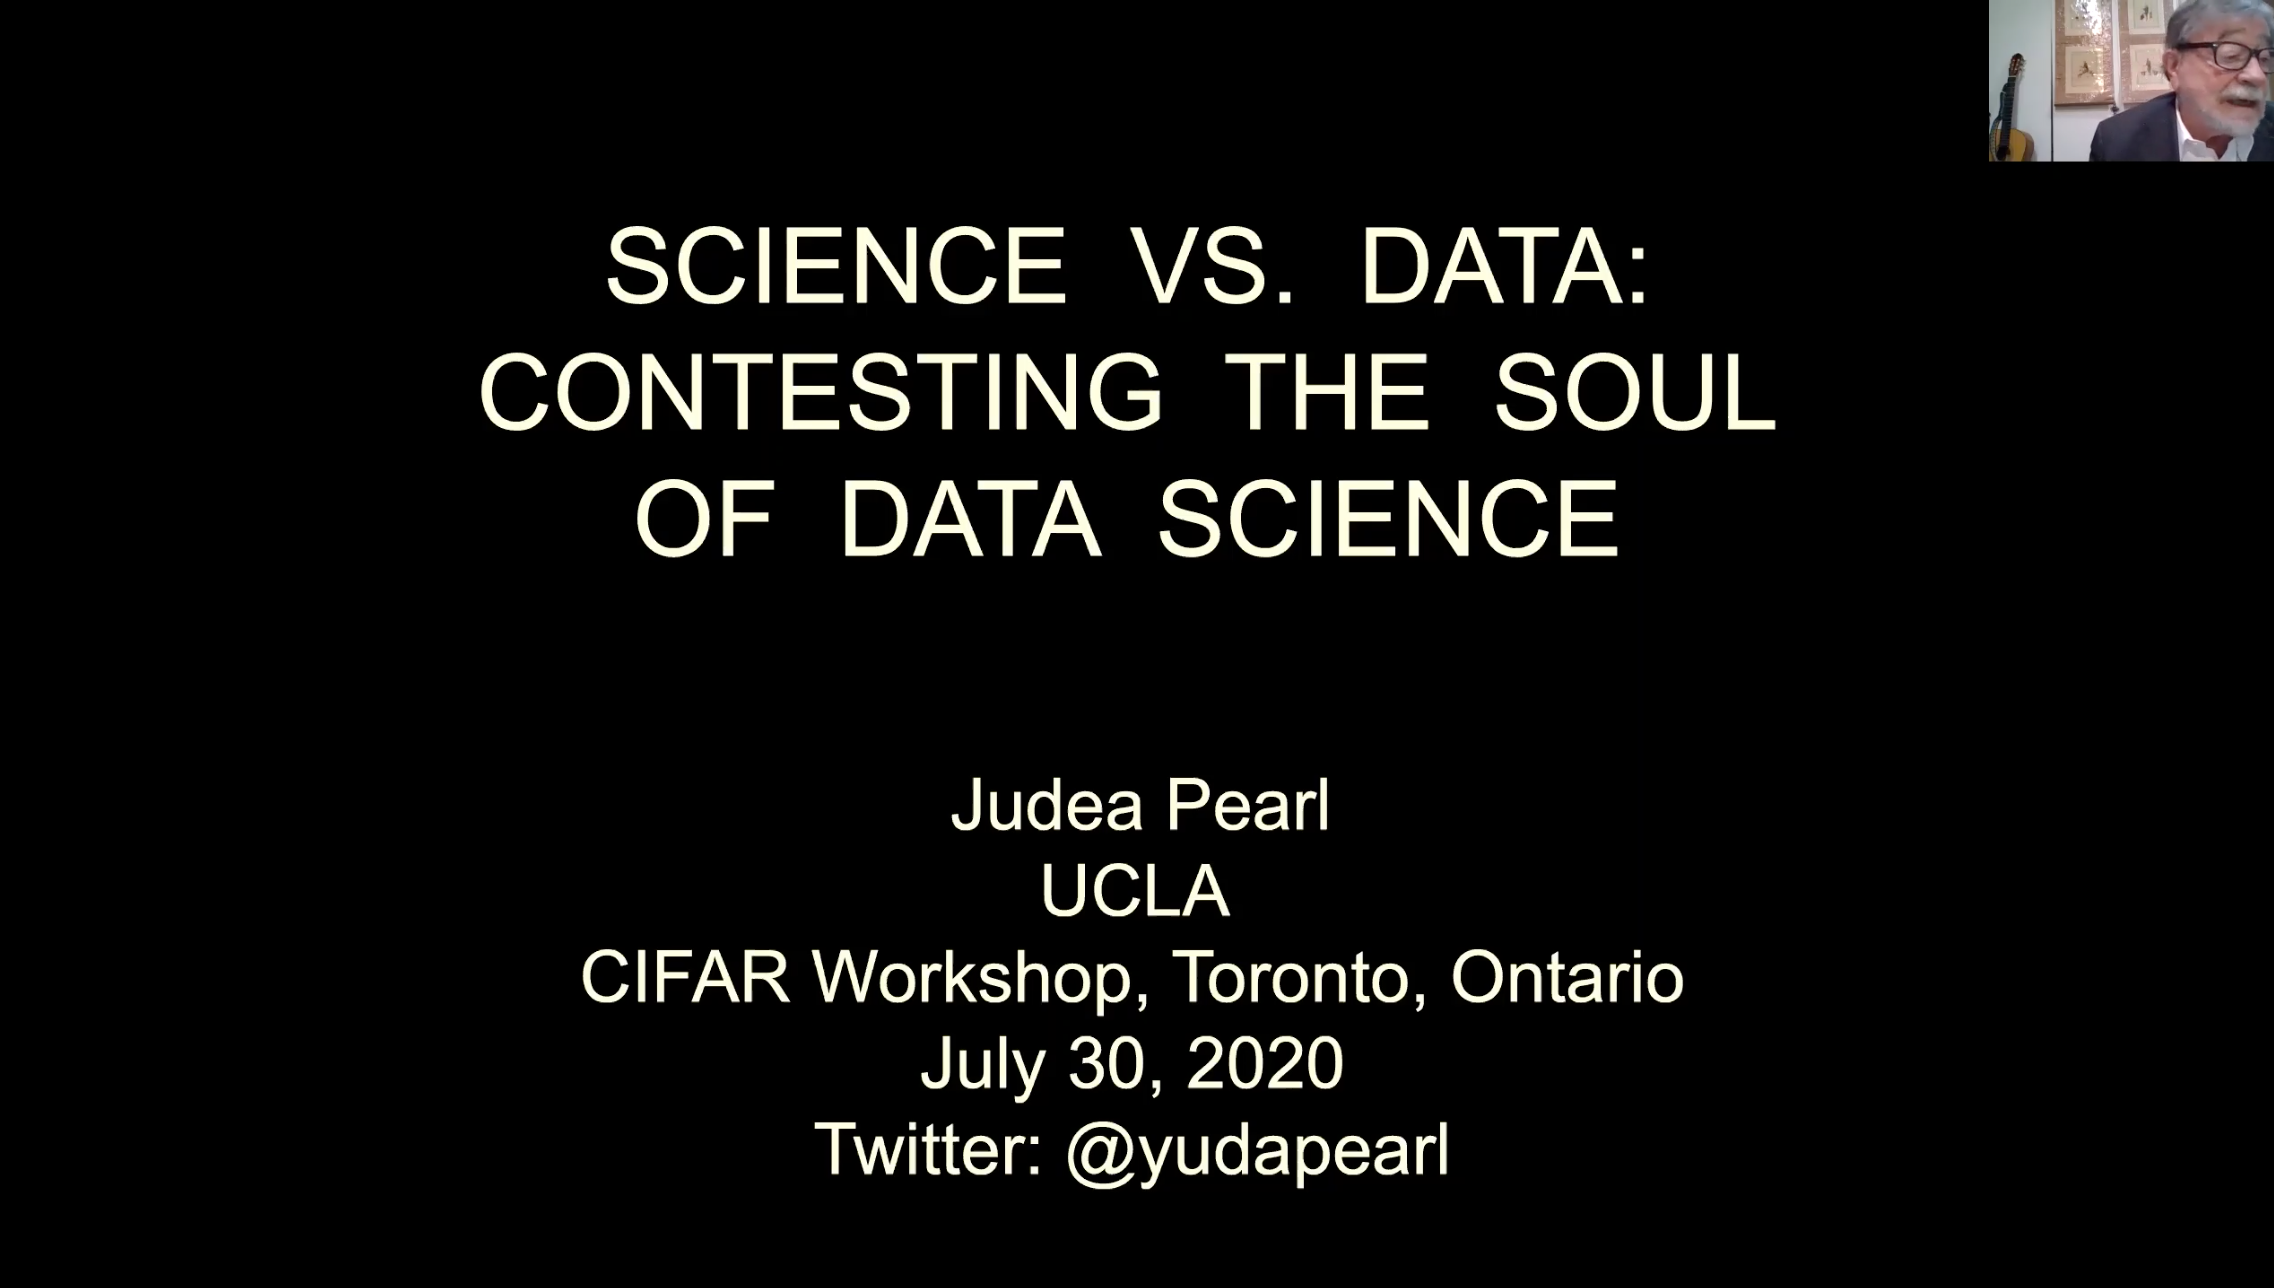 Science vs. Data: Contesting the Soul of Data Science